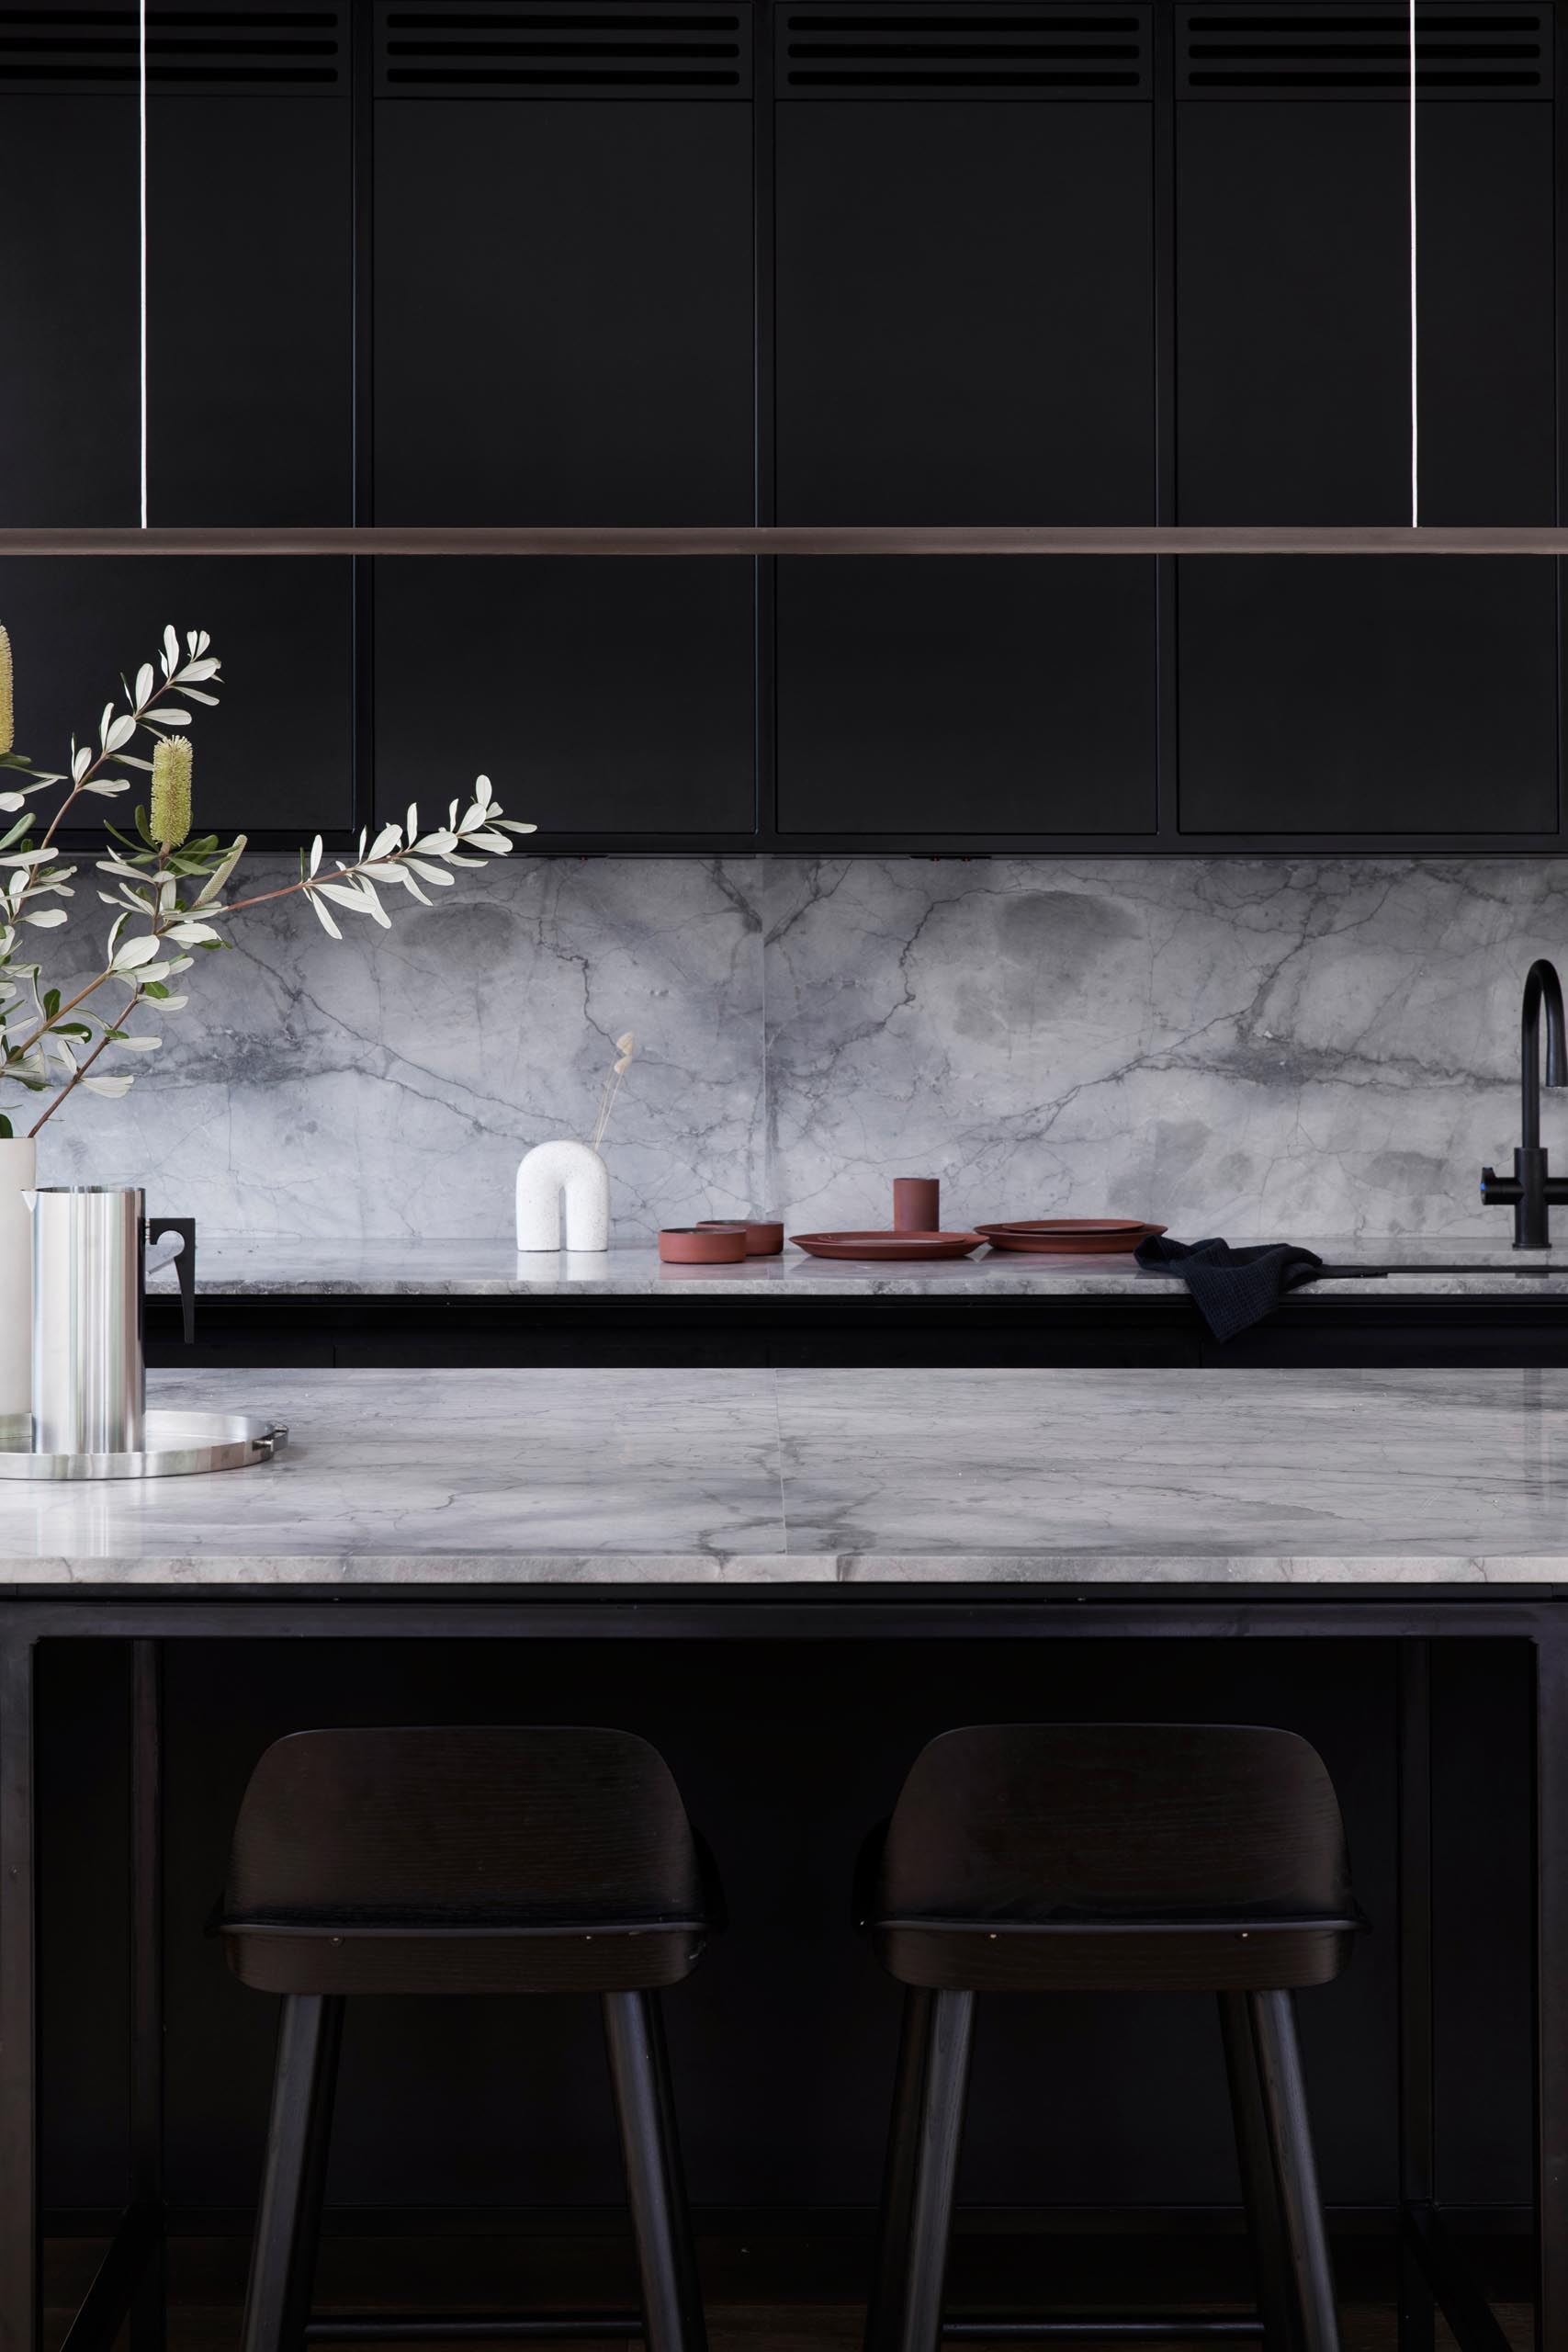 A modern kitchen has a simple color palette with matte black cabinets that are made from Paperock, a sustainable building material combining condensed layers of renewable paper bonded with resin. Grey marble, black hardware, and a minimalist horizontal light fixture complete the look.